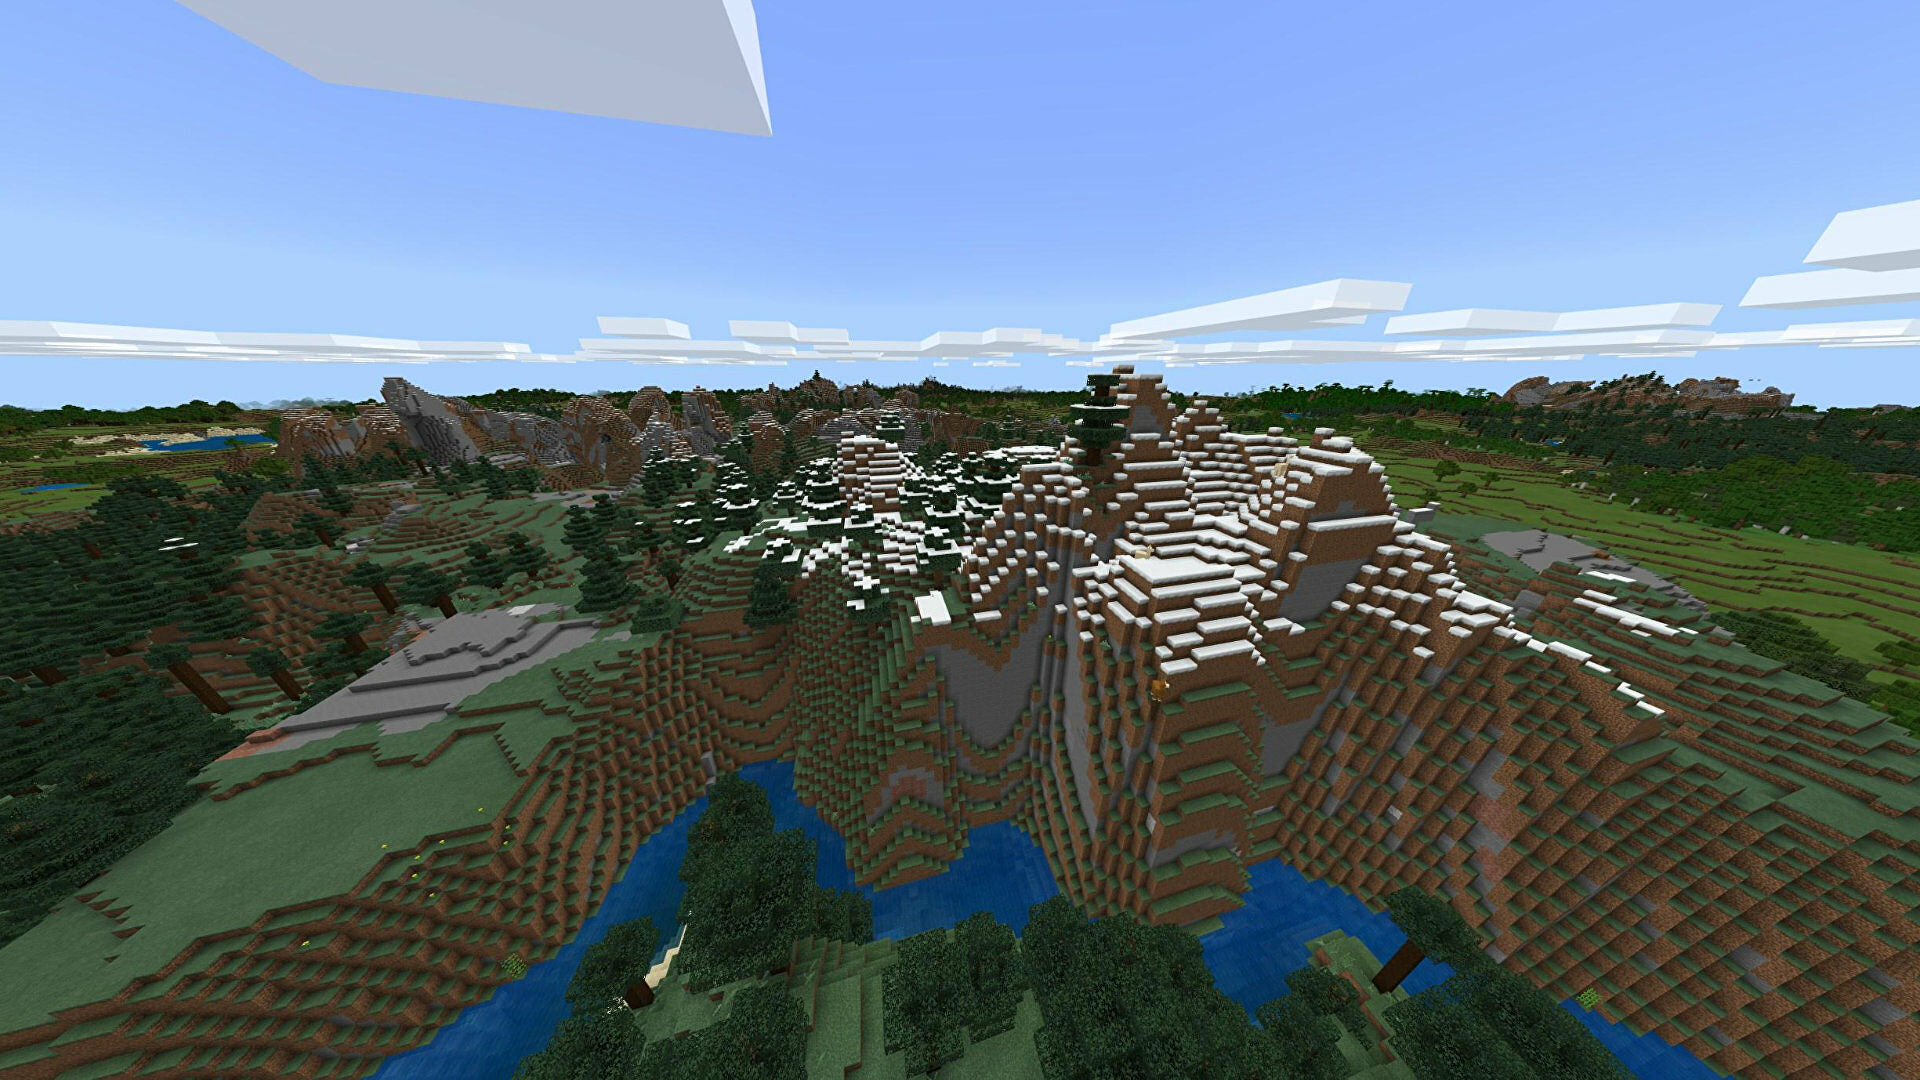 A Minecraft Bedrock screenshot of a new world created with the seed -872552281.